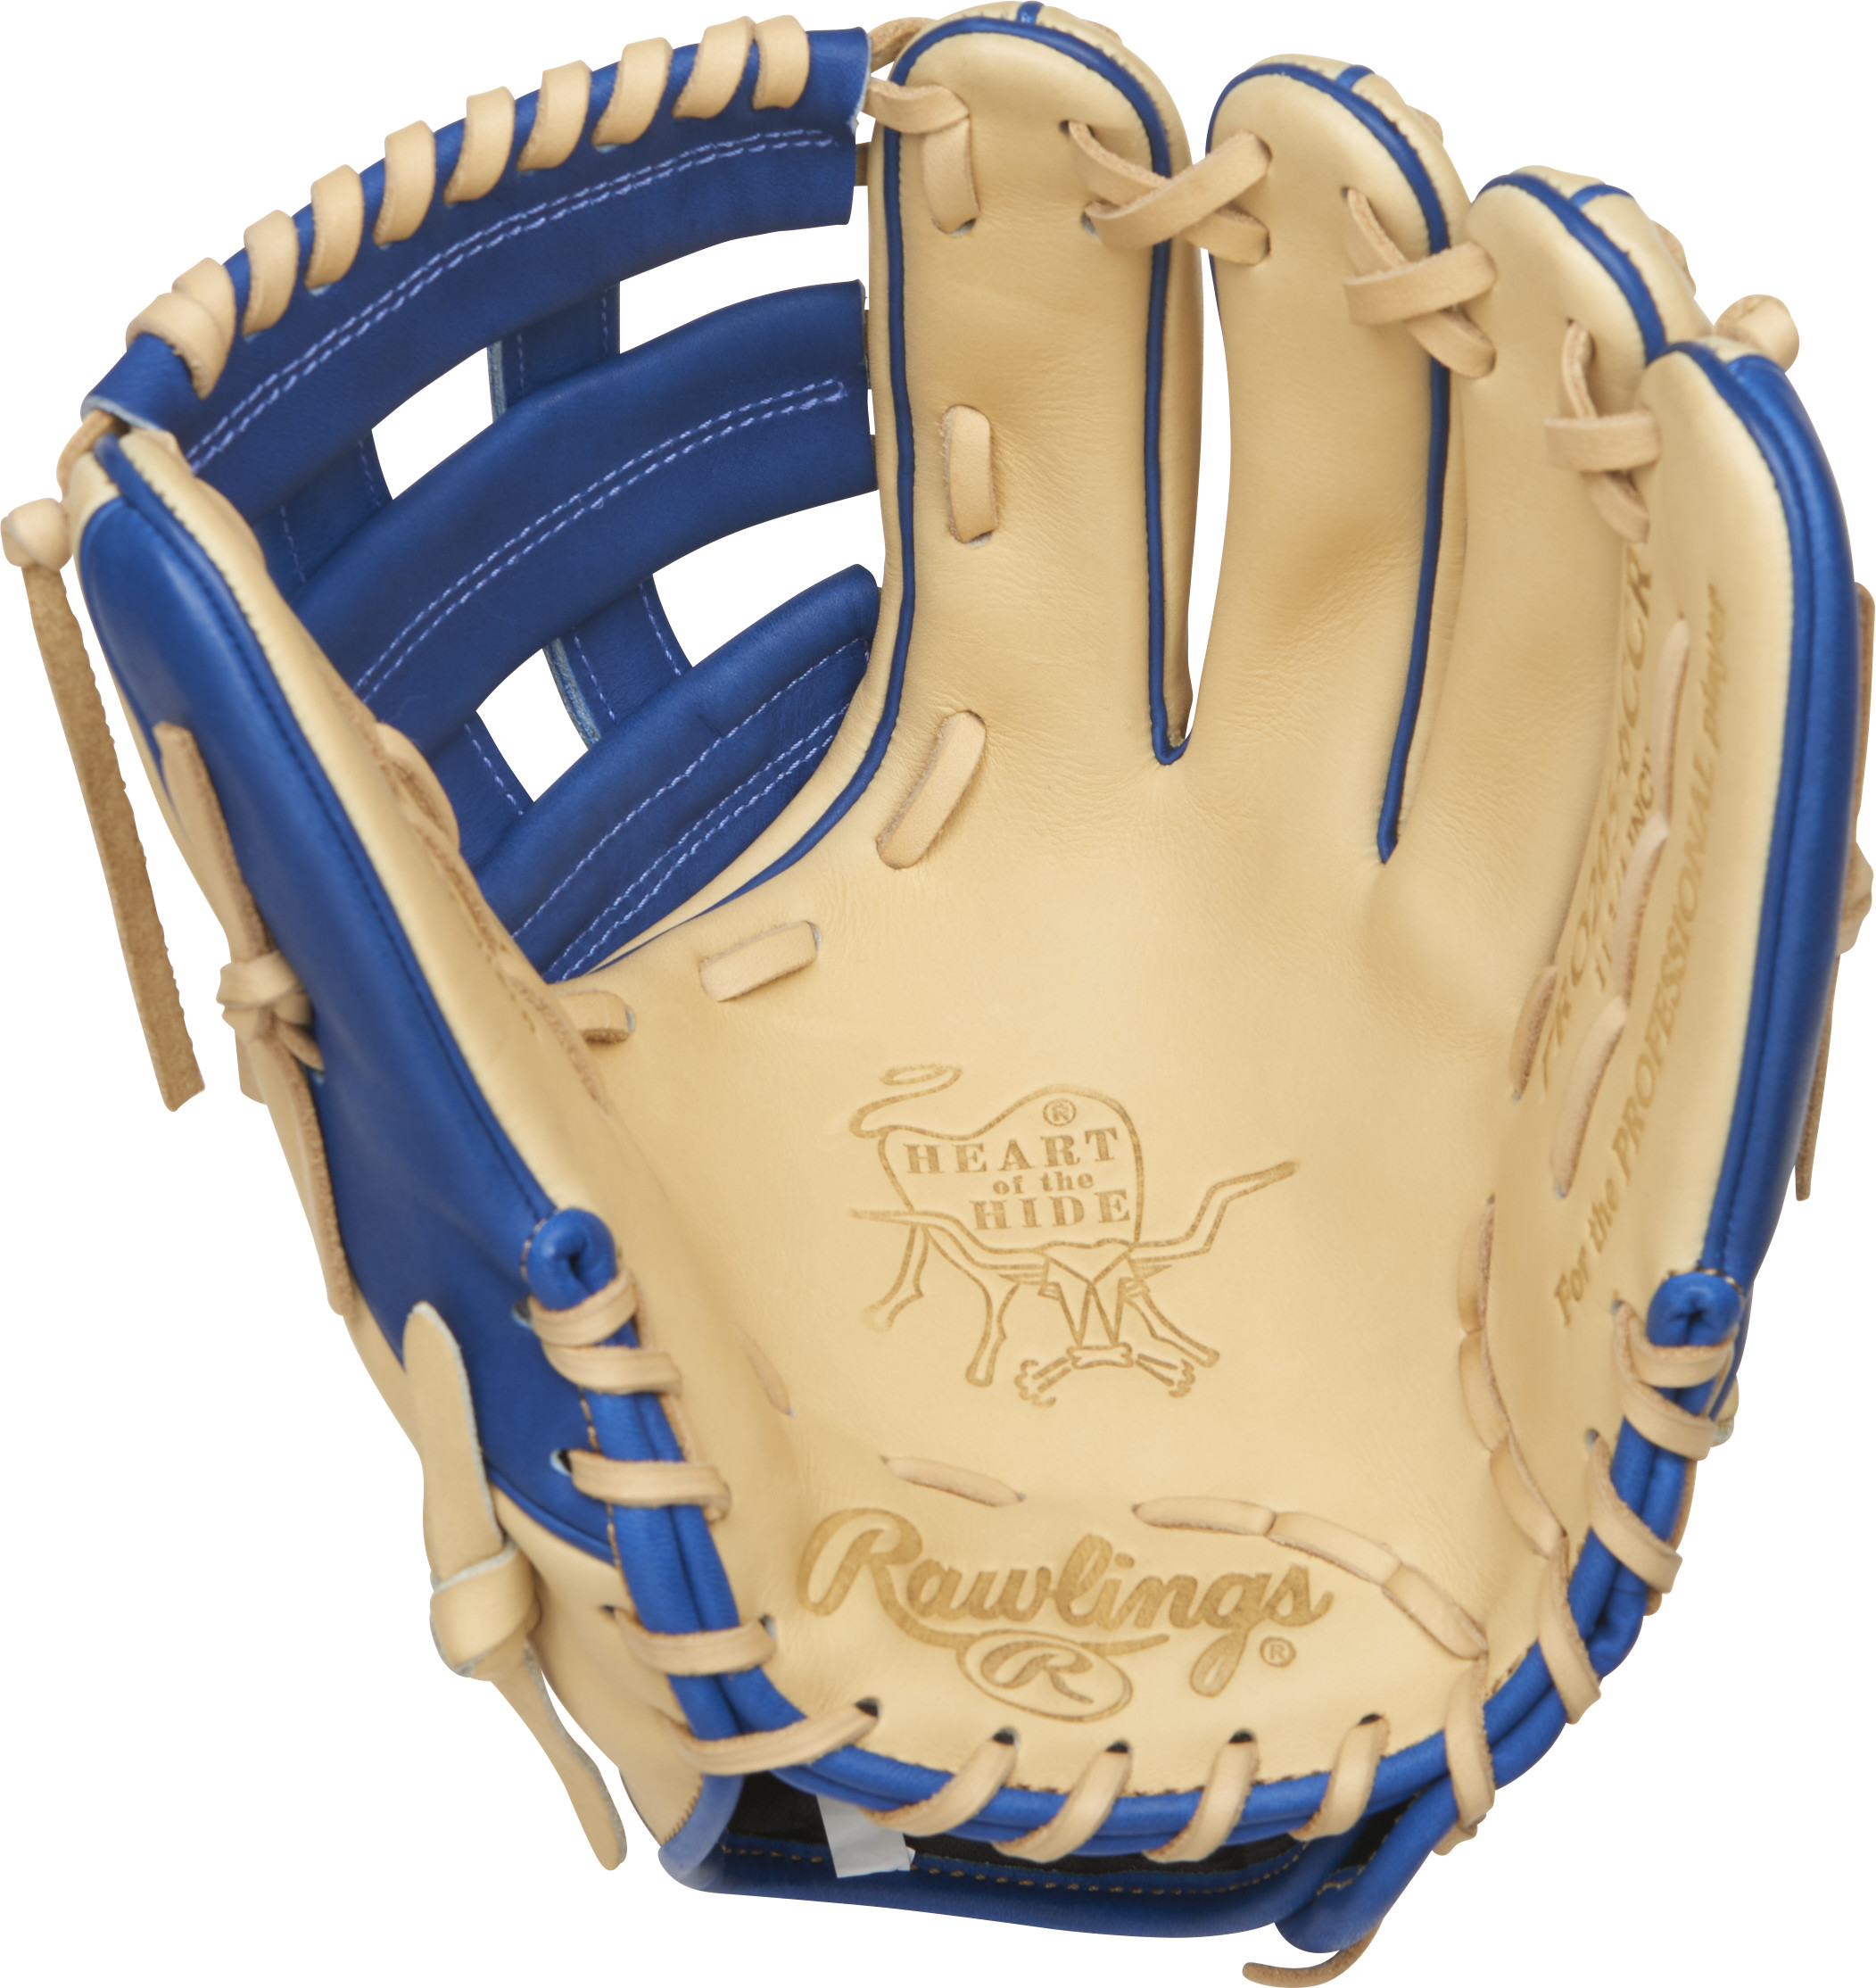 http://www.bestbatdeals.com/images/gloves/rawlings/PRO205-6CCR-1.jpg